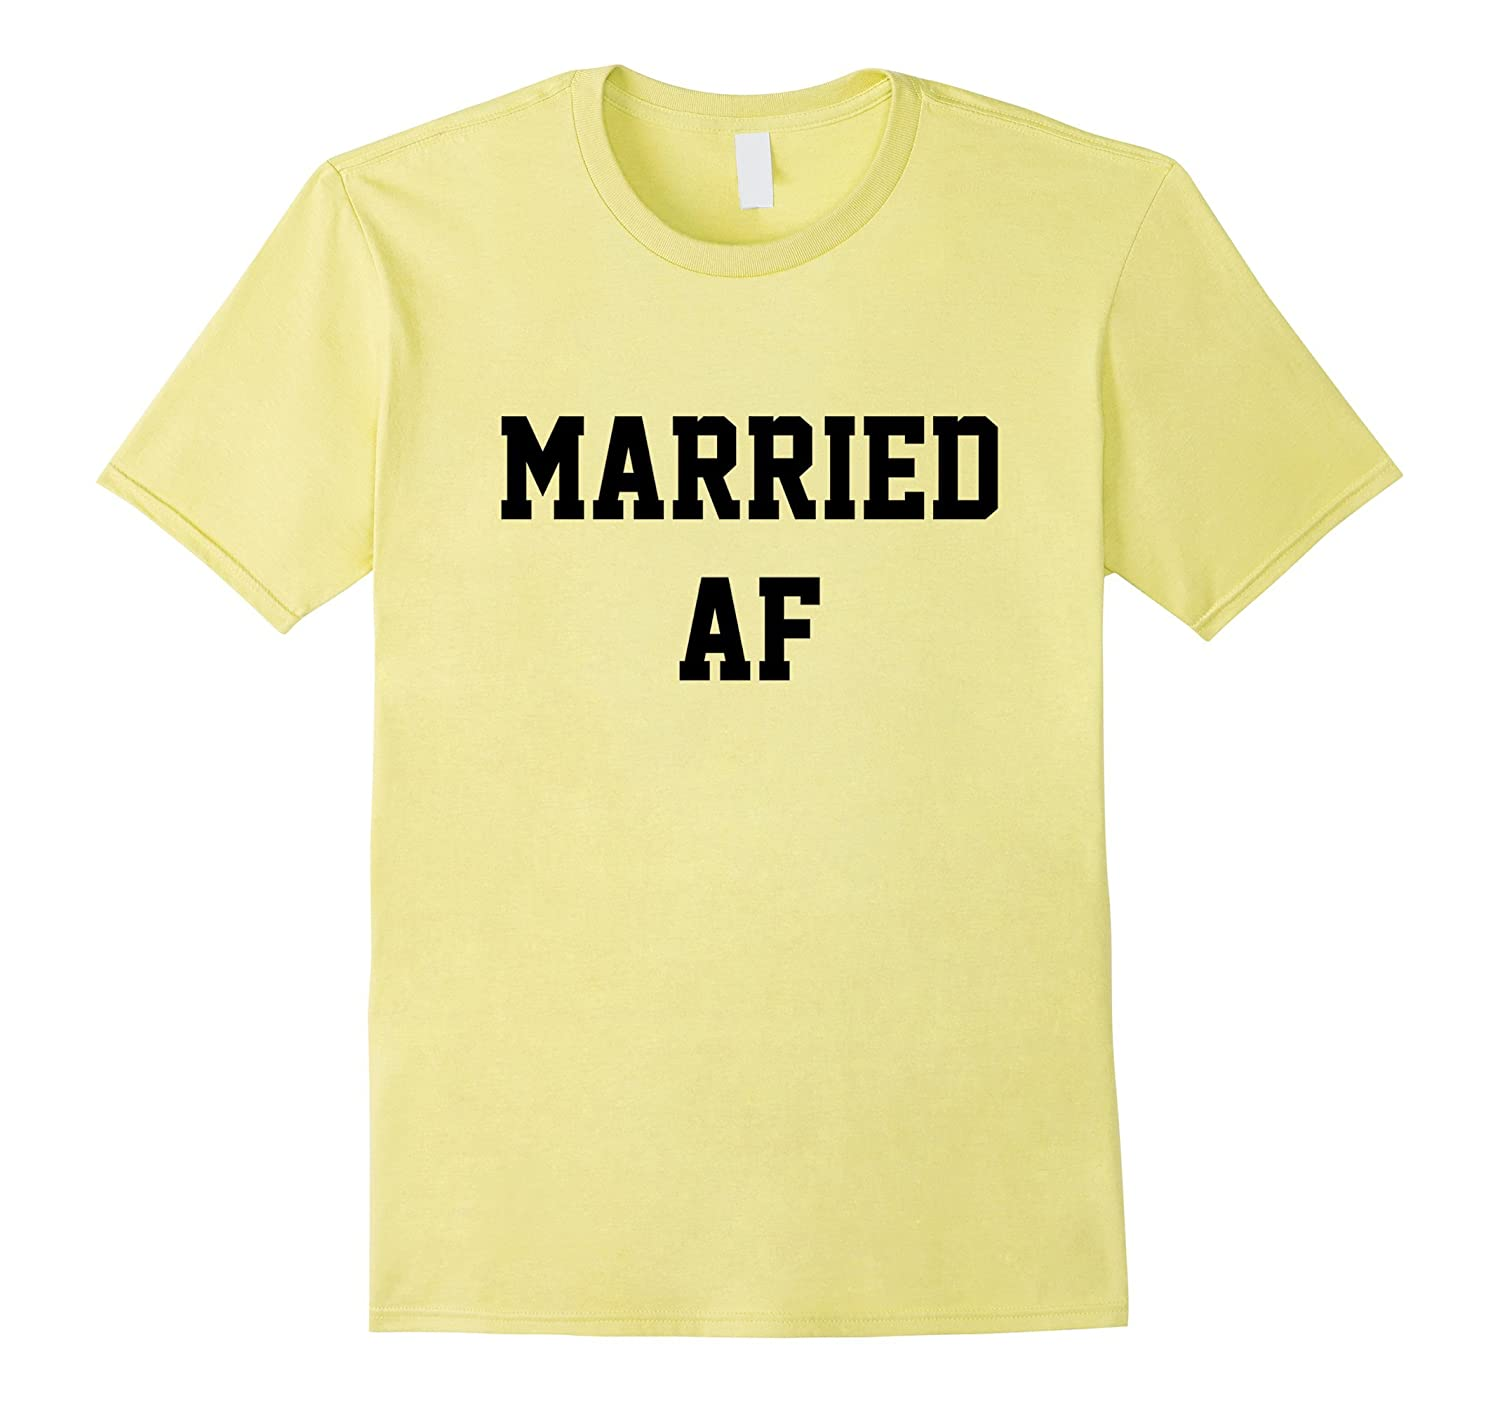 Married AF T-Shirt Funny Marriage Novelty Gag Joke Wedding-Vaci